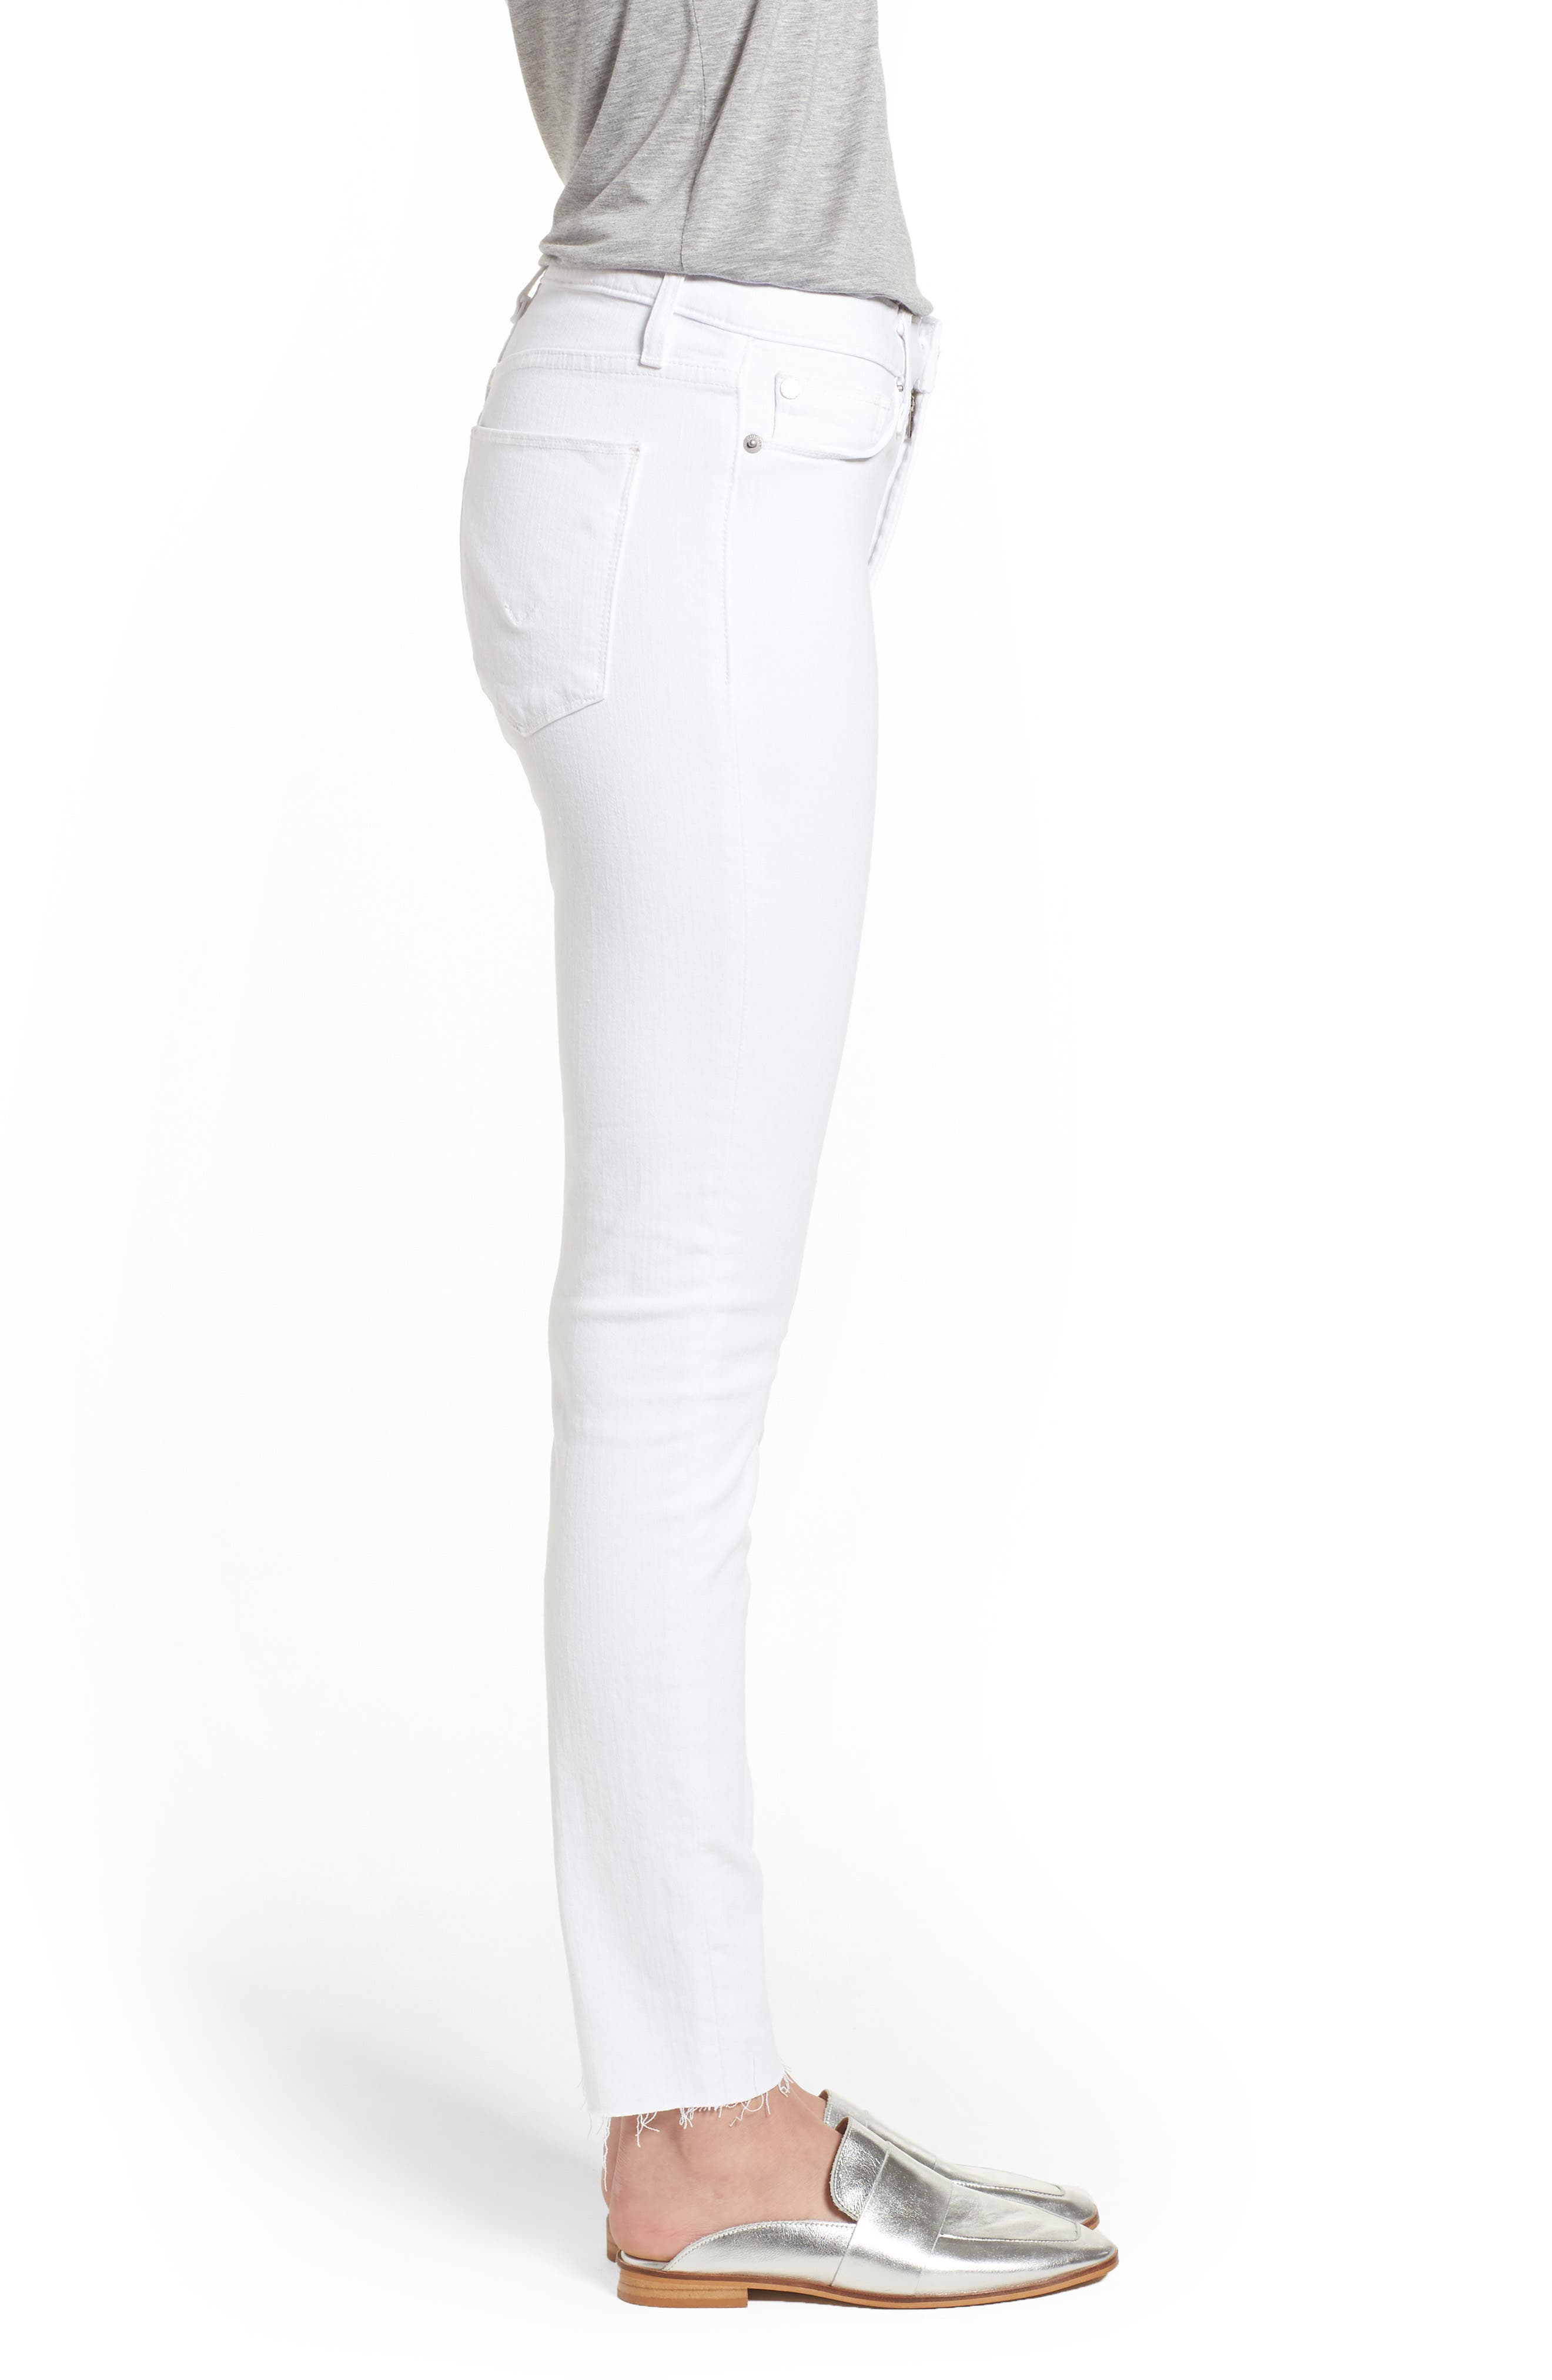 Barbara High Waist Raw Hem Ankle Skinny Jeans,                             Alternate thumbnail 3, color,                             Optical White